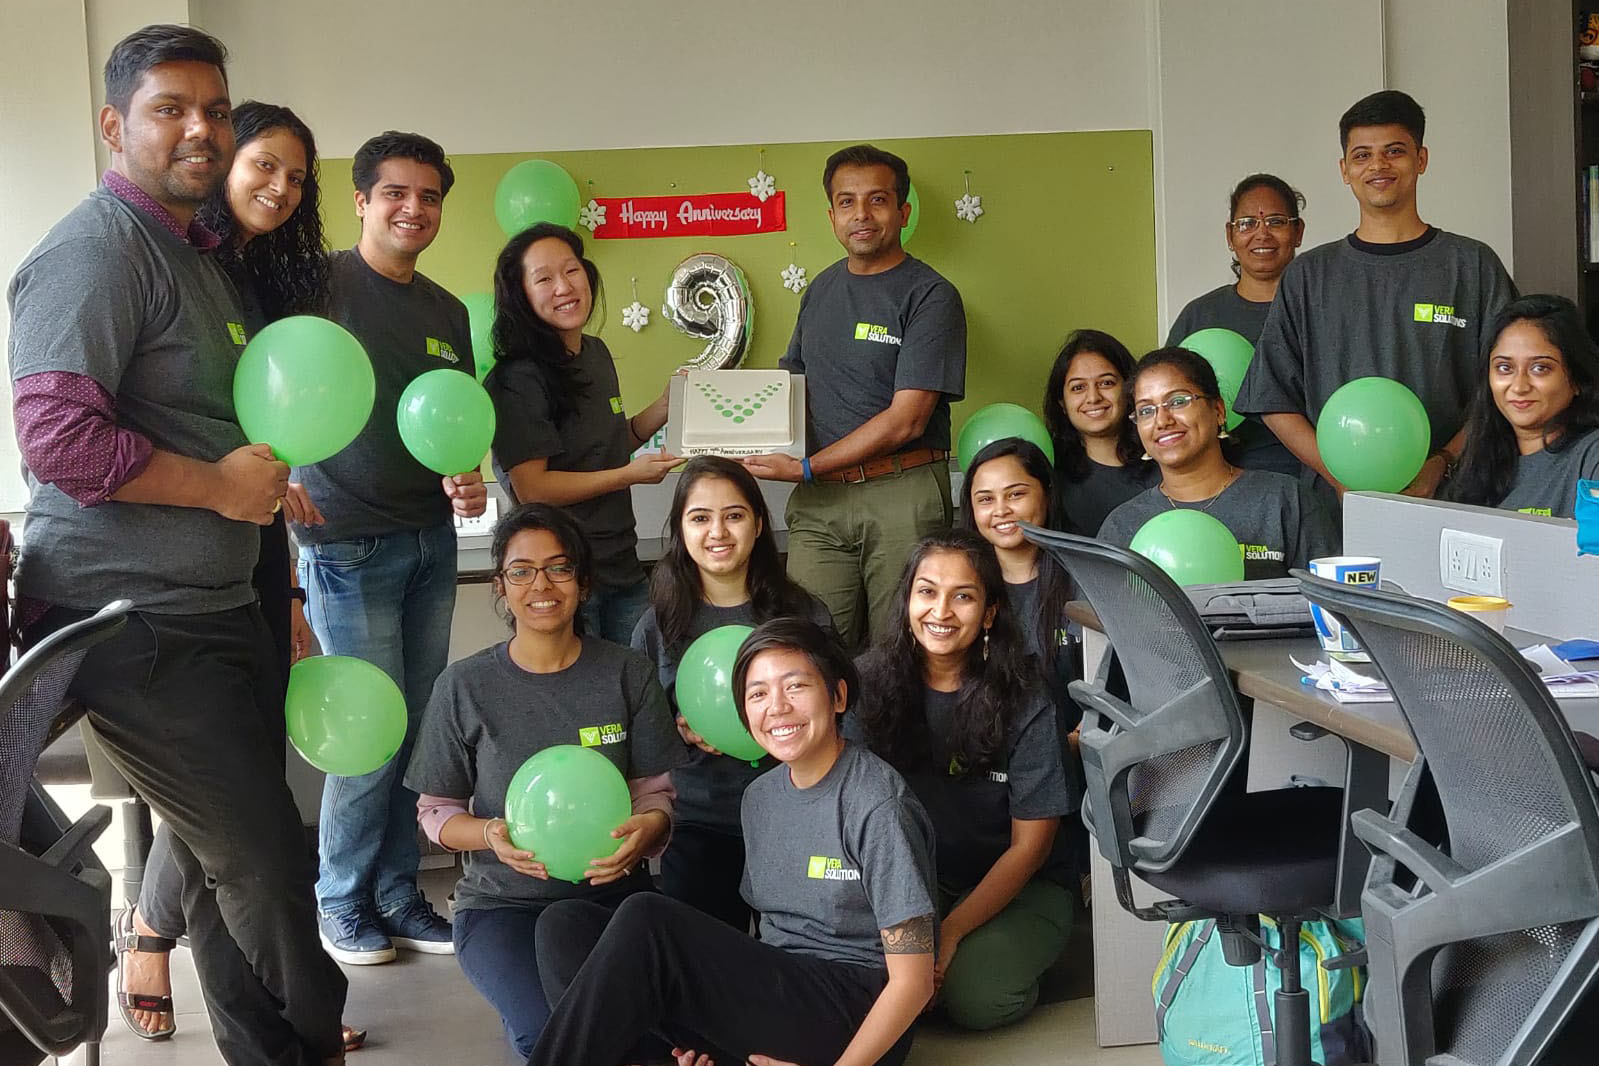 Vera Solutions celebrates 9 years working to amplify the impact of the social sector